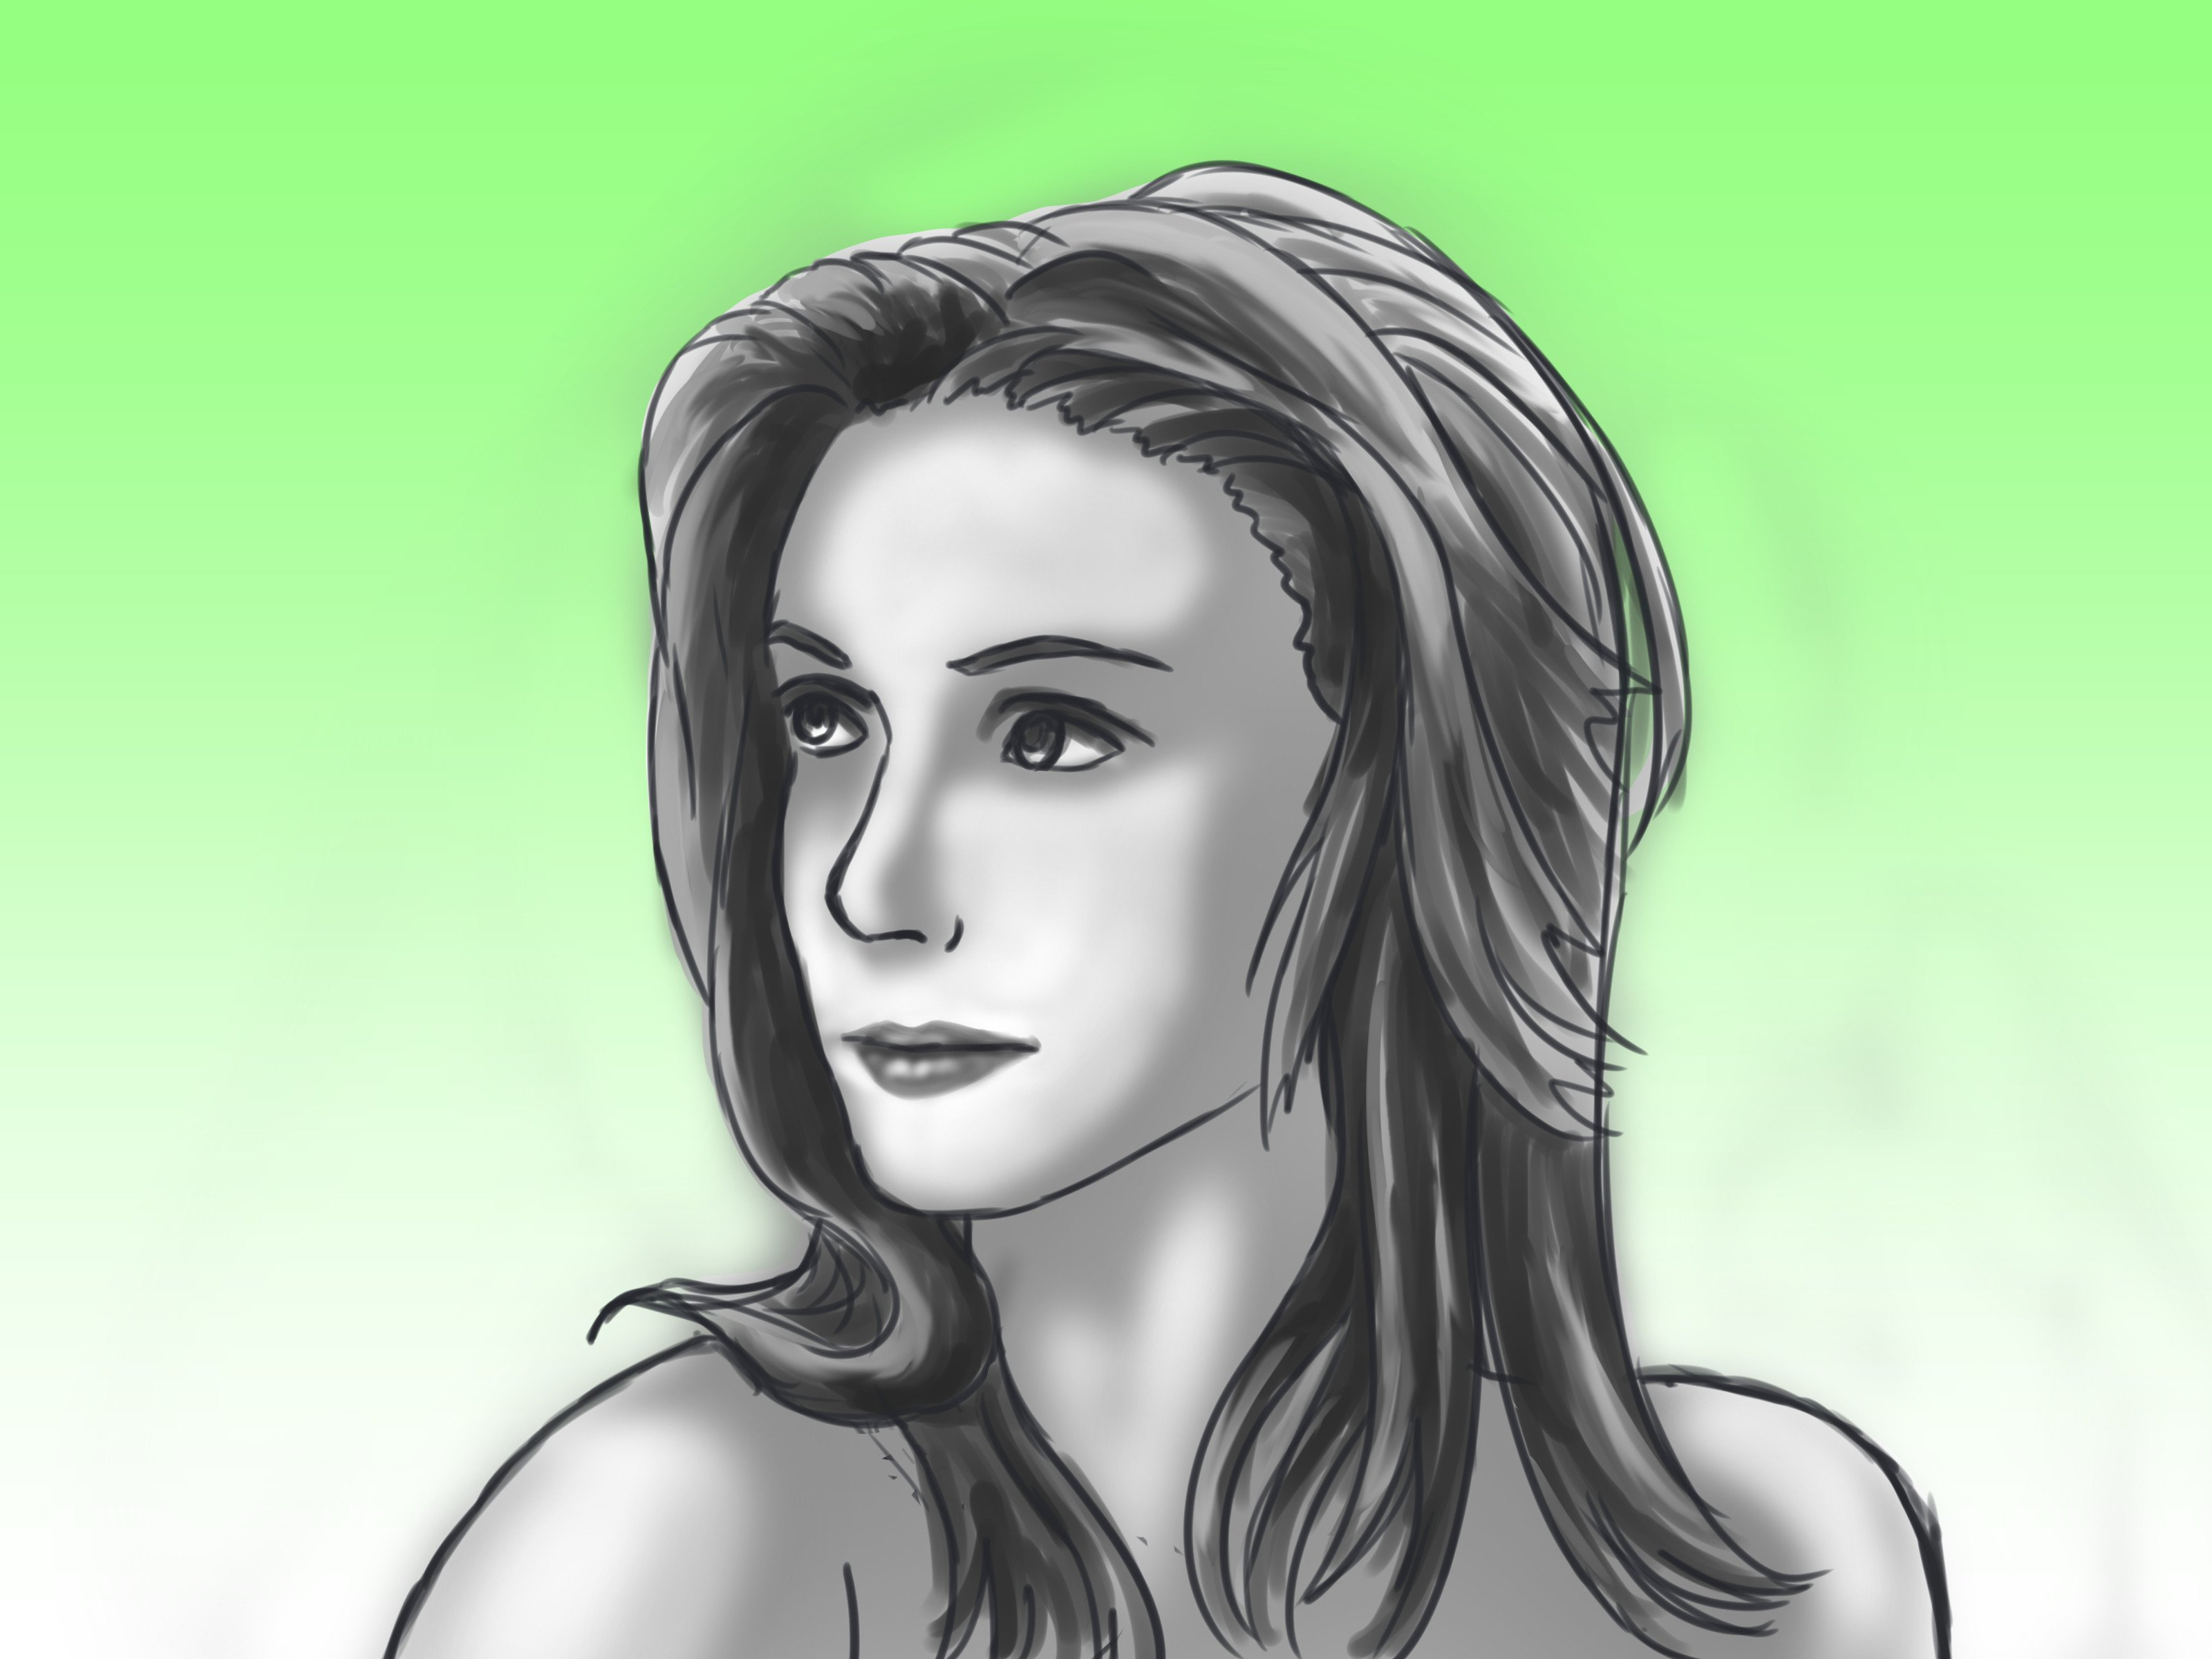 Drawn Pictures Of Girls How to Draw A Portrait Of A Woman with Wikihow